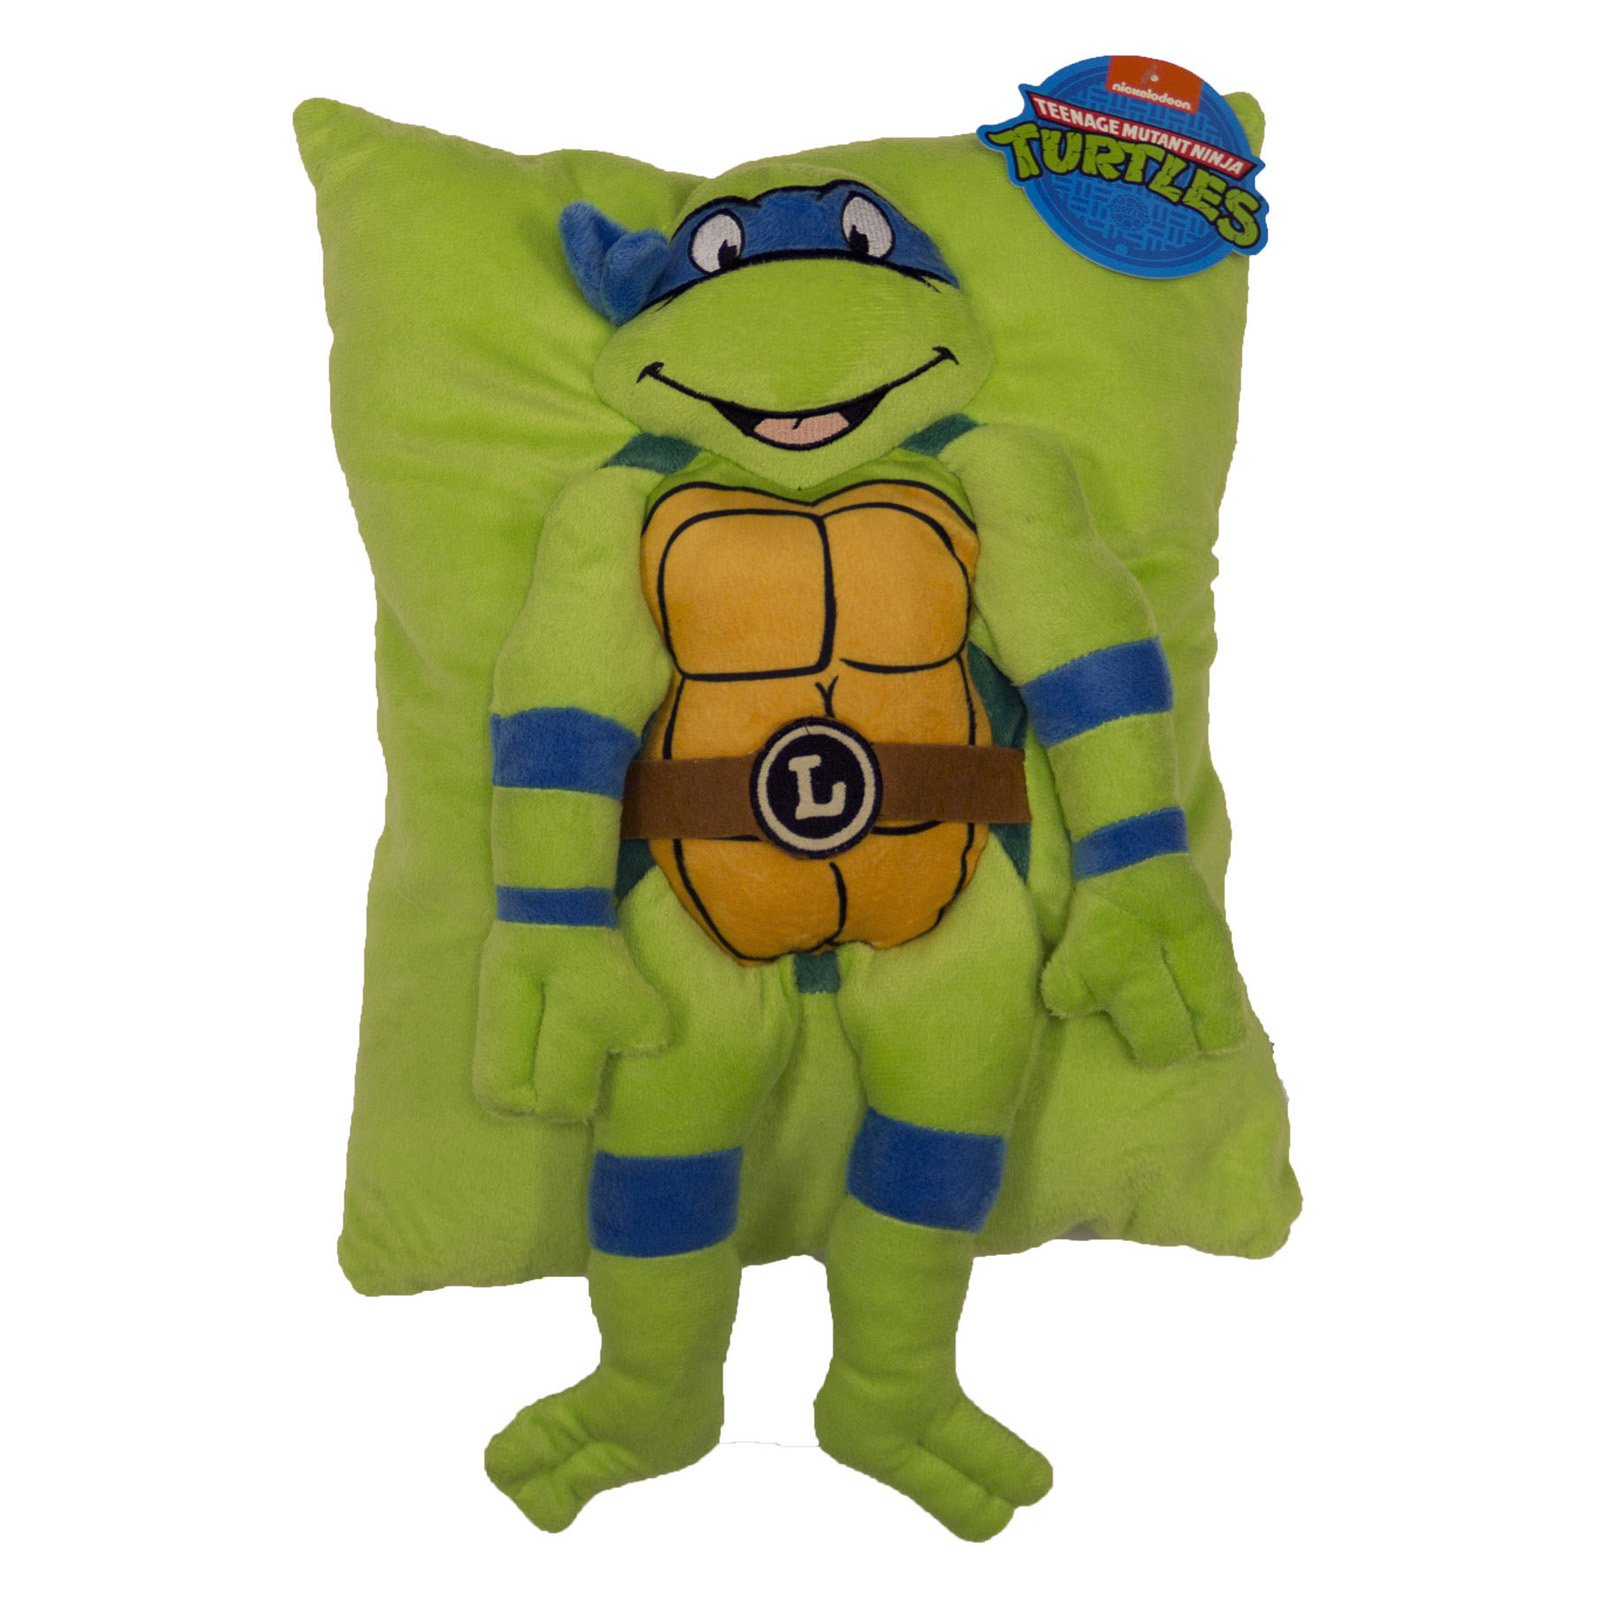 Teenage Mutant Ninja Turtles Retro Leonardo Character Pillow by Nickelodeon